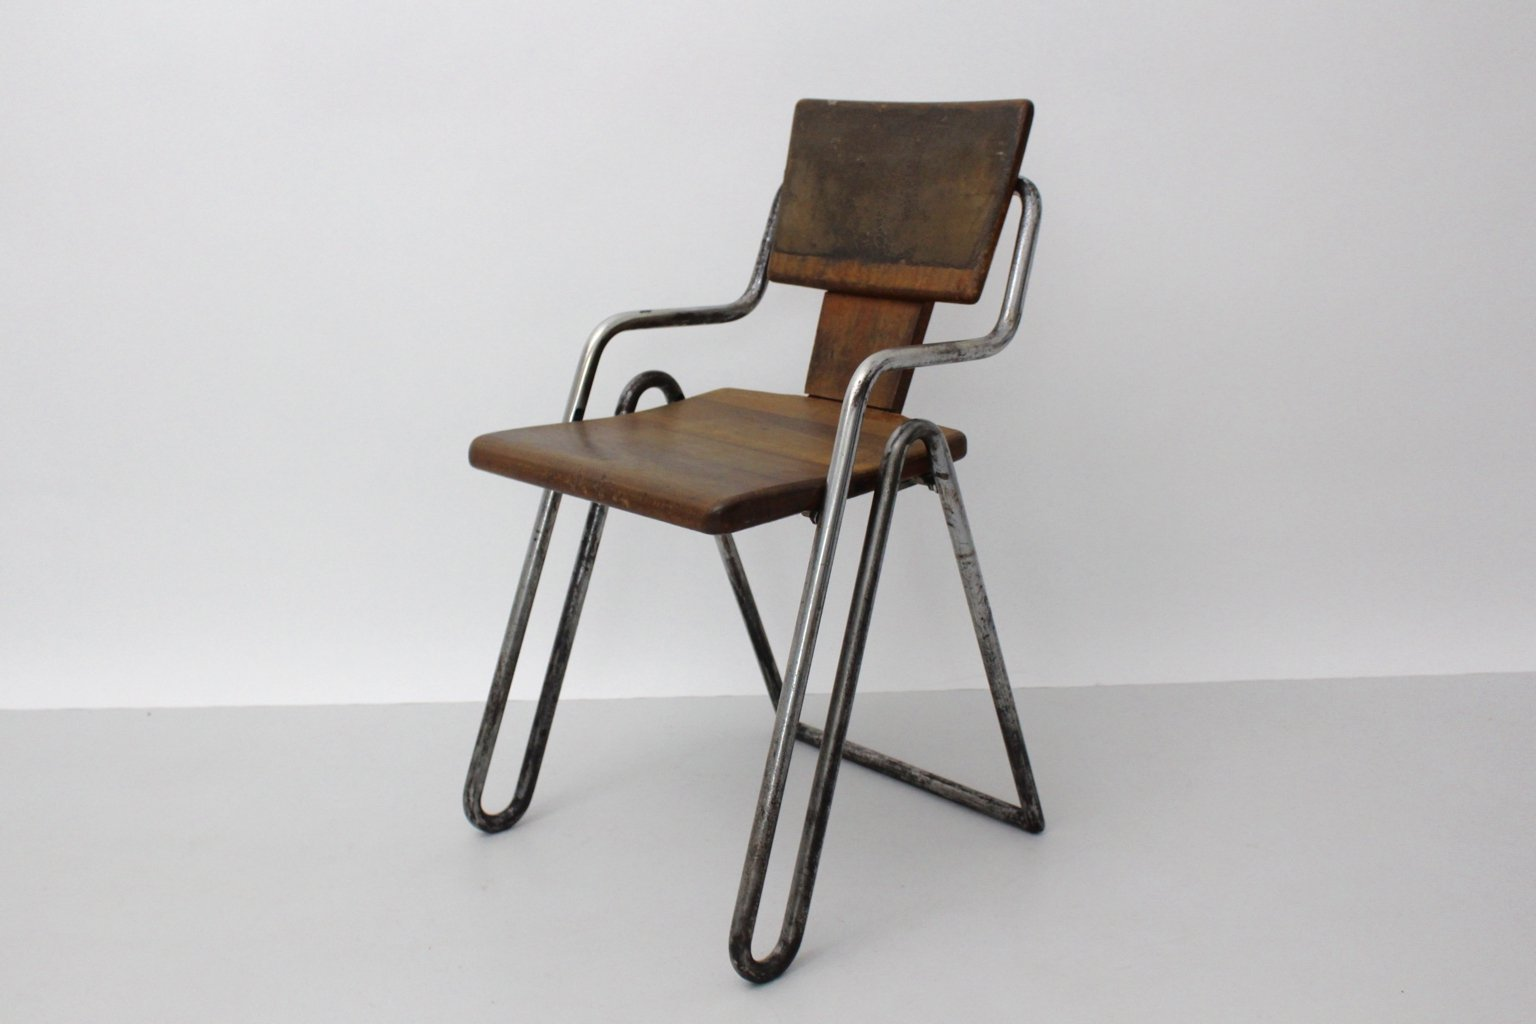 Vintage Tubular Steel Chair By Peter Behrens 1930s For